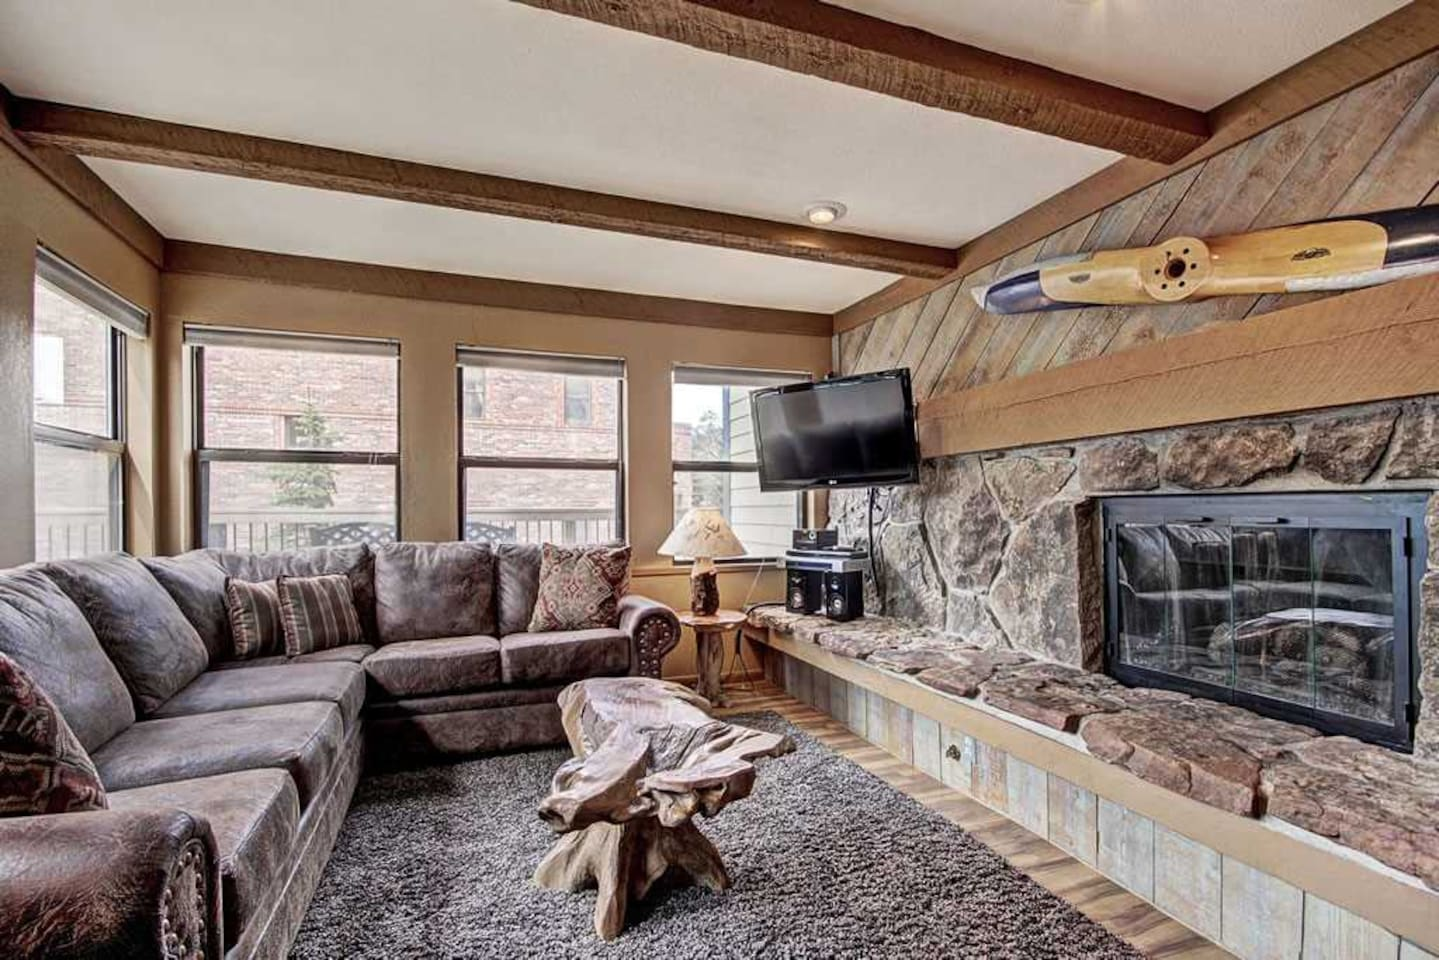 This fantastic two-bedroom unit has everything you need for the perfect mountain escape.